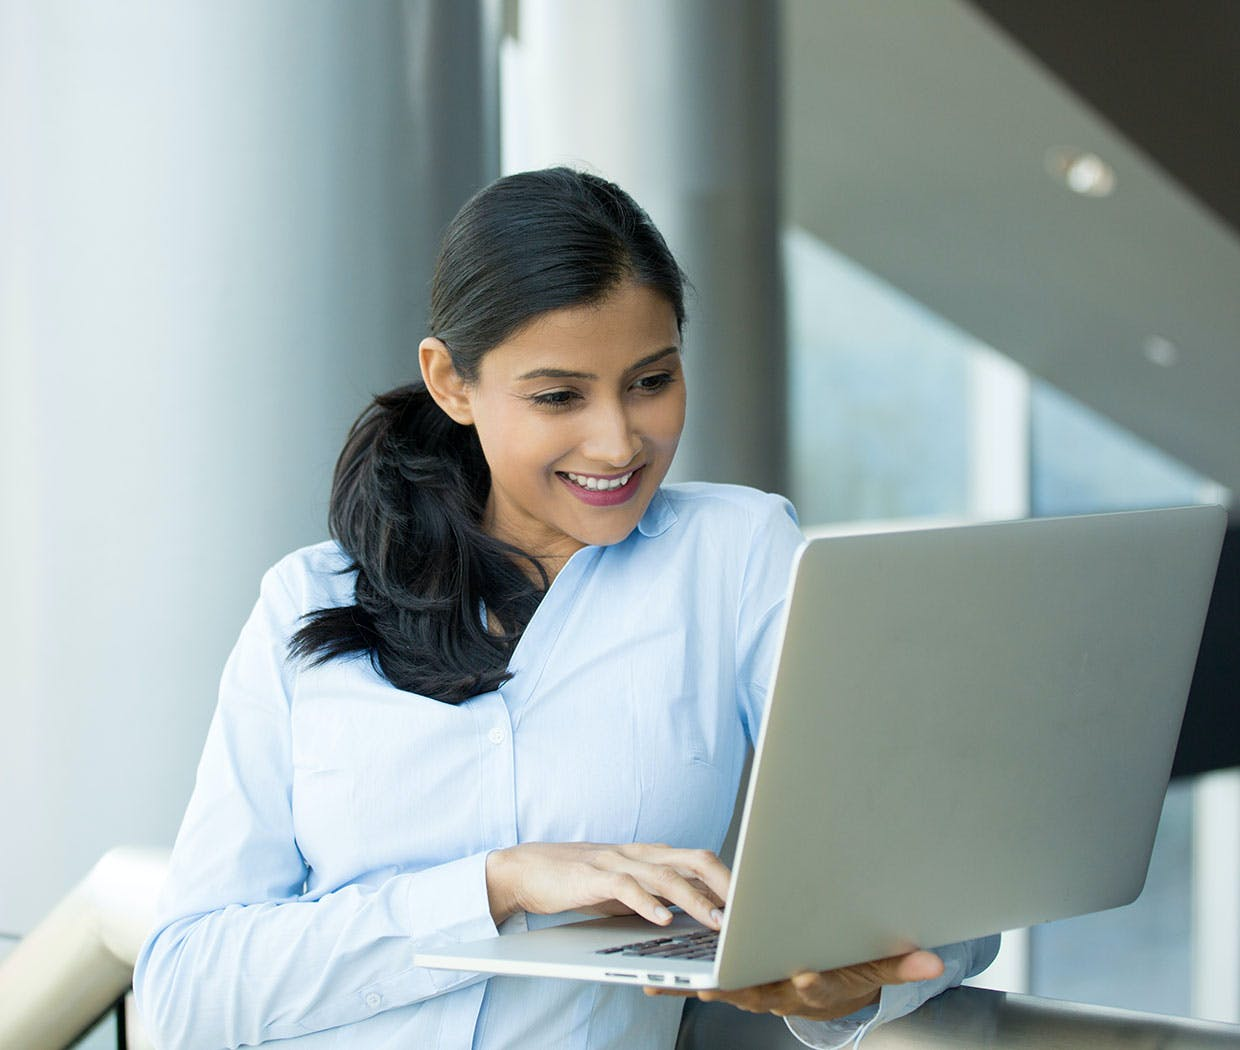 An office environment with woman sitting at laptop writing notes